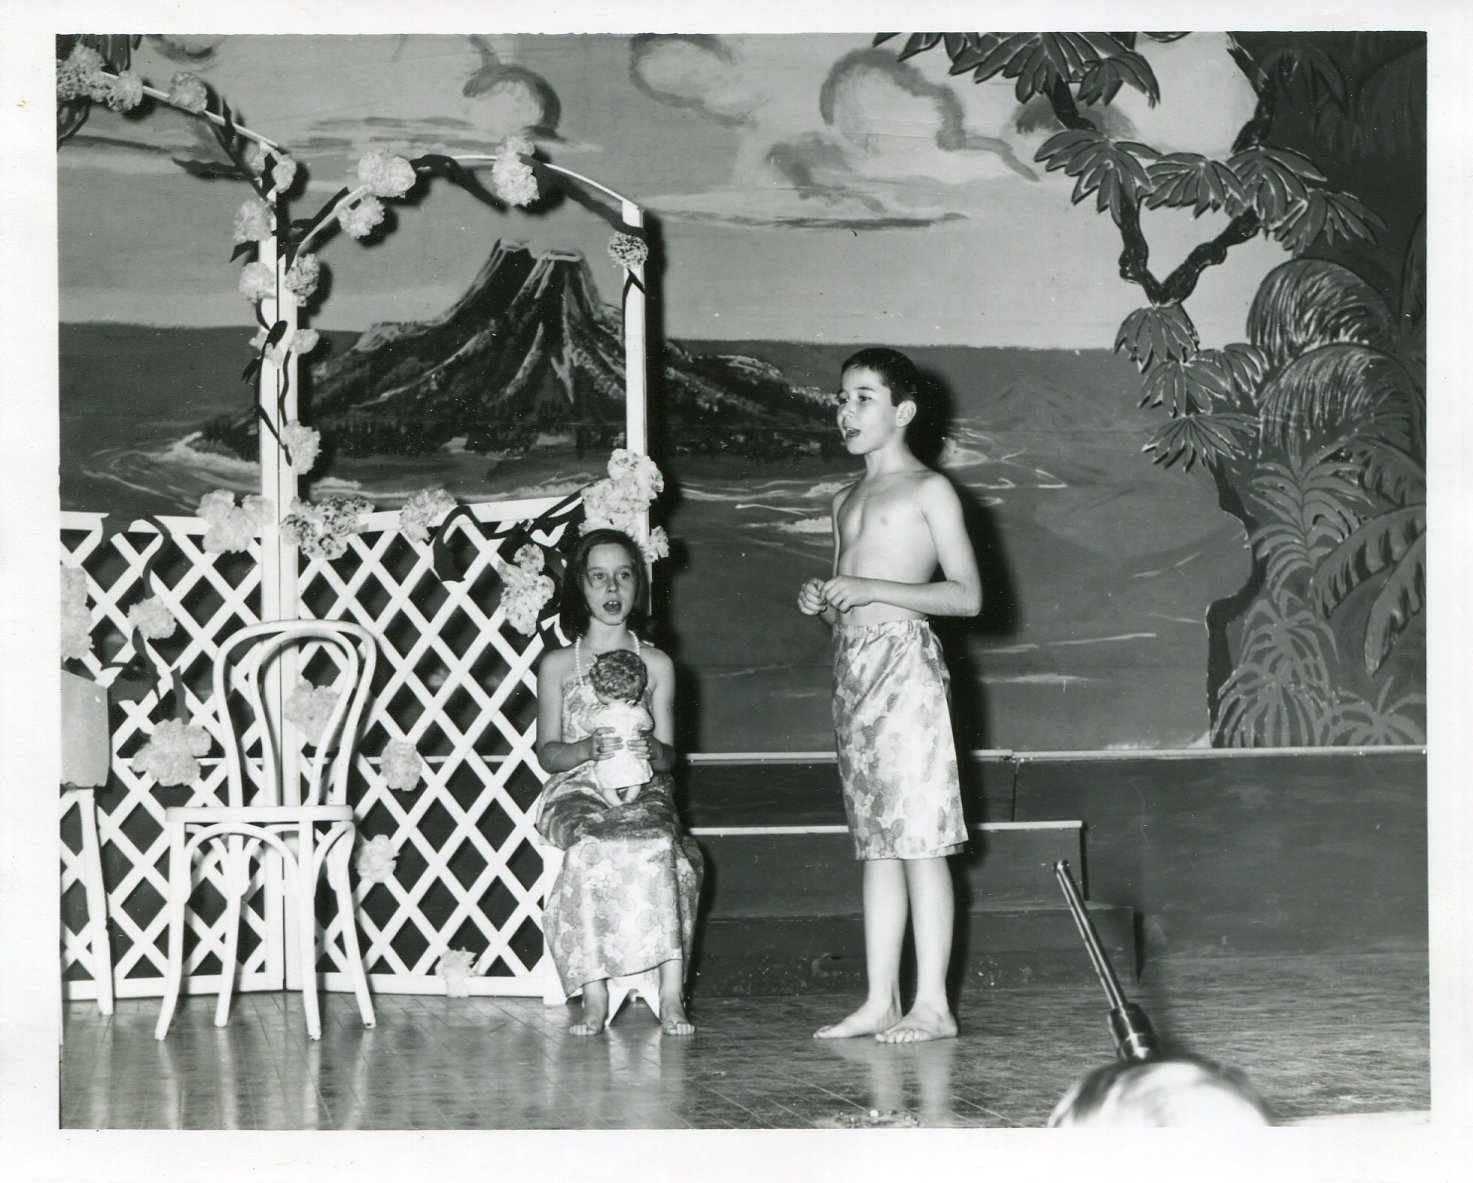 Dianne_SouthPacific_001.jpg